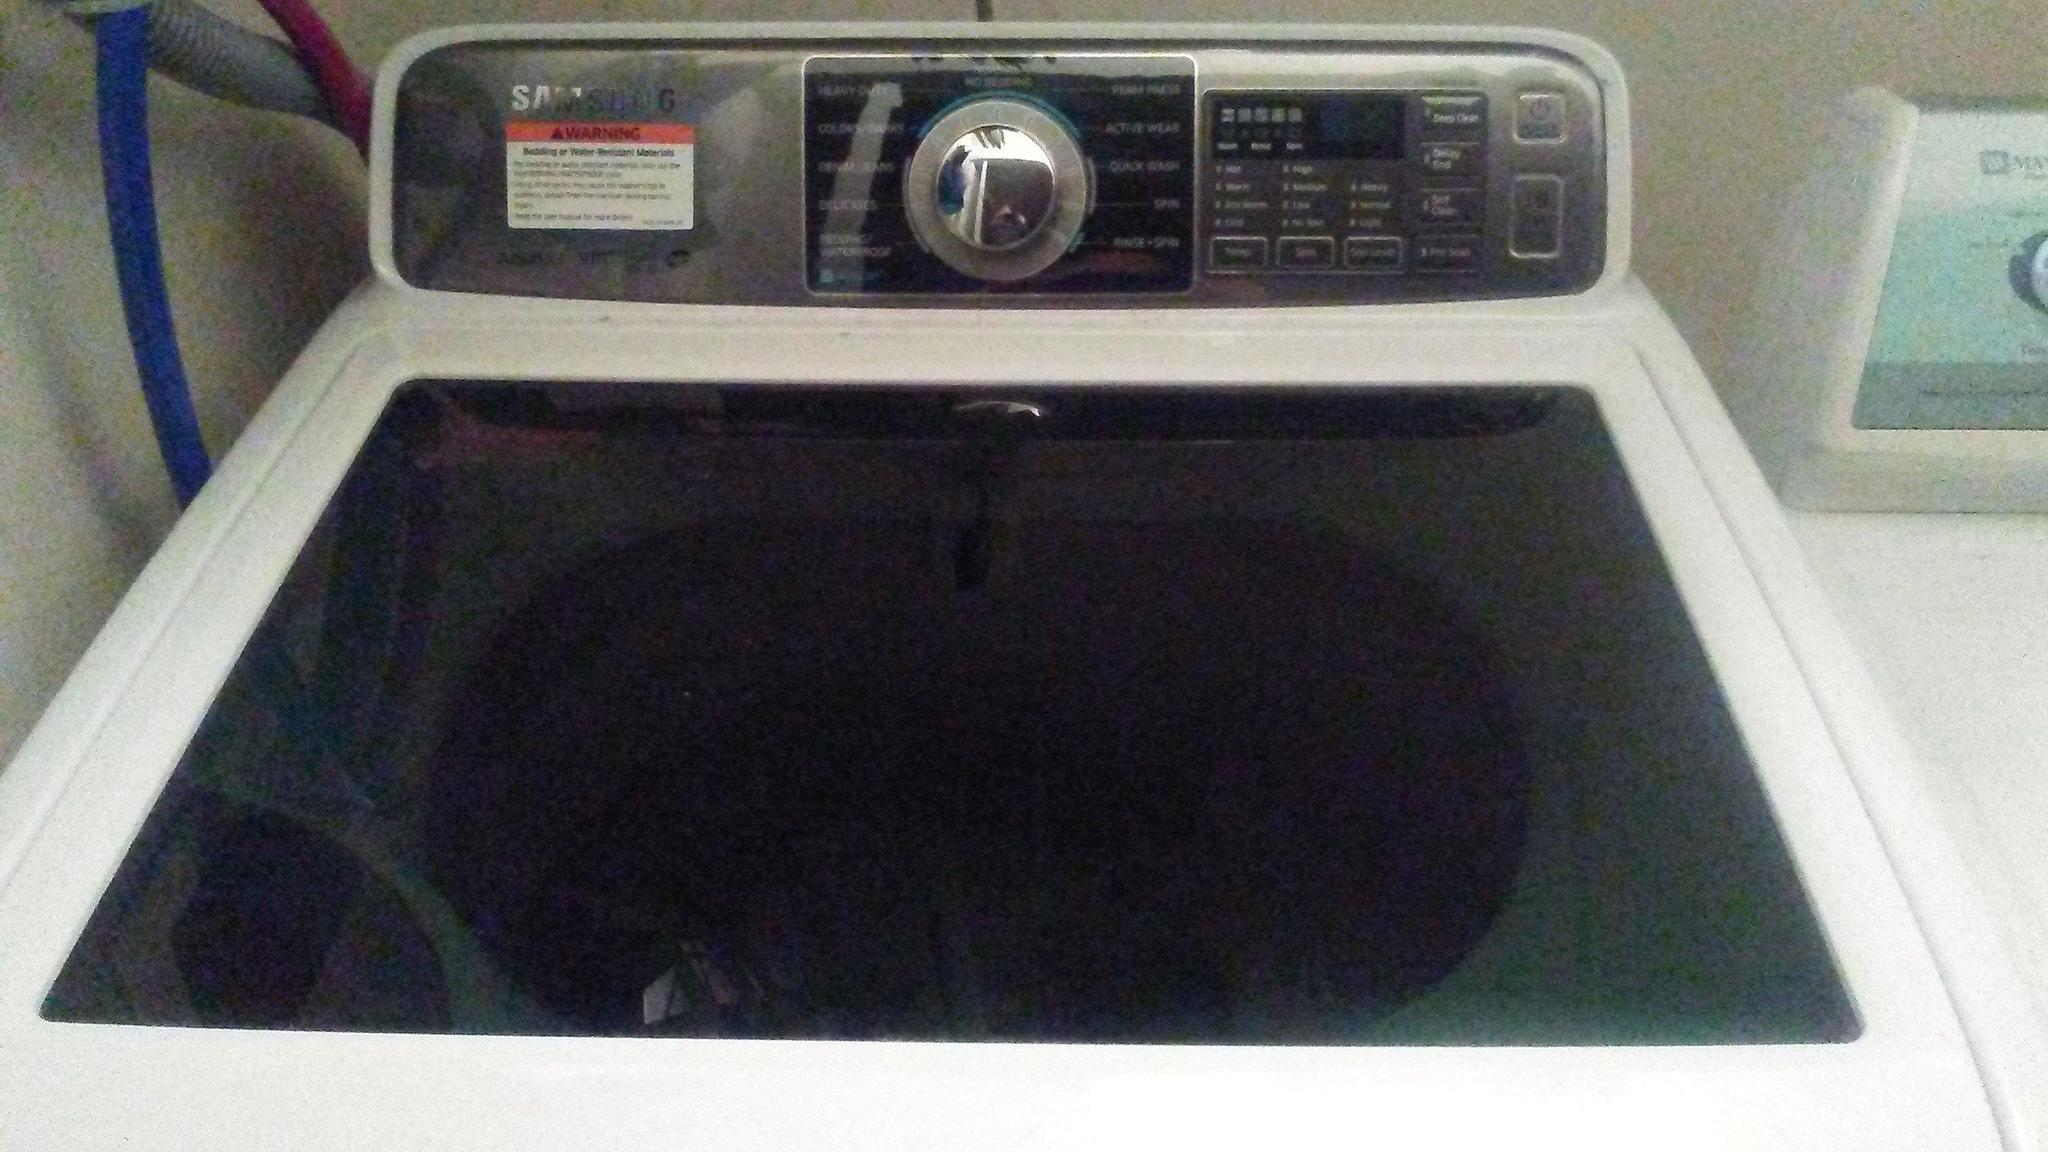 What Is A Class Action Lawsuit >> Not all Samsung washing machine recall repairs going well - The Morning Call